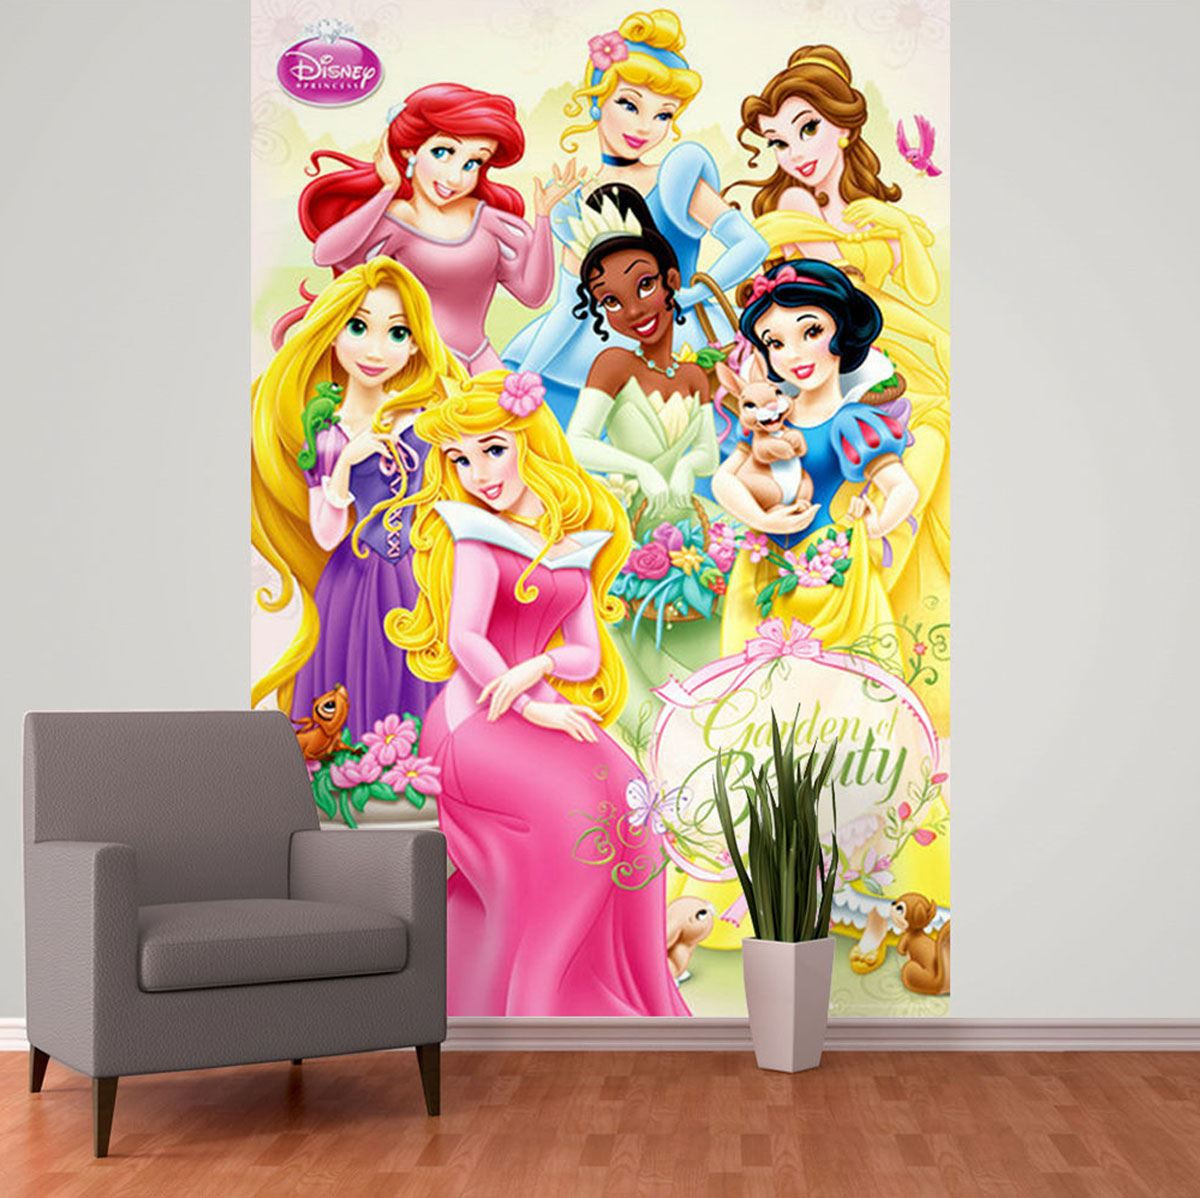 DISNEY PRINCESS WALLPAPER WALL MURAL 232cm x 158cm NEW BEDROOM DECOR 1200x1198